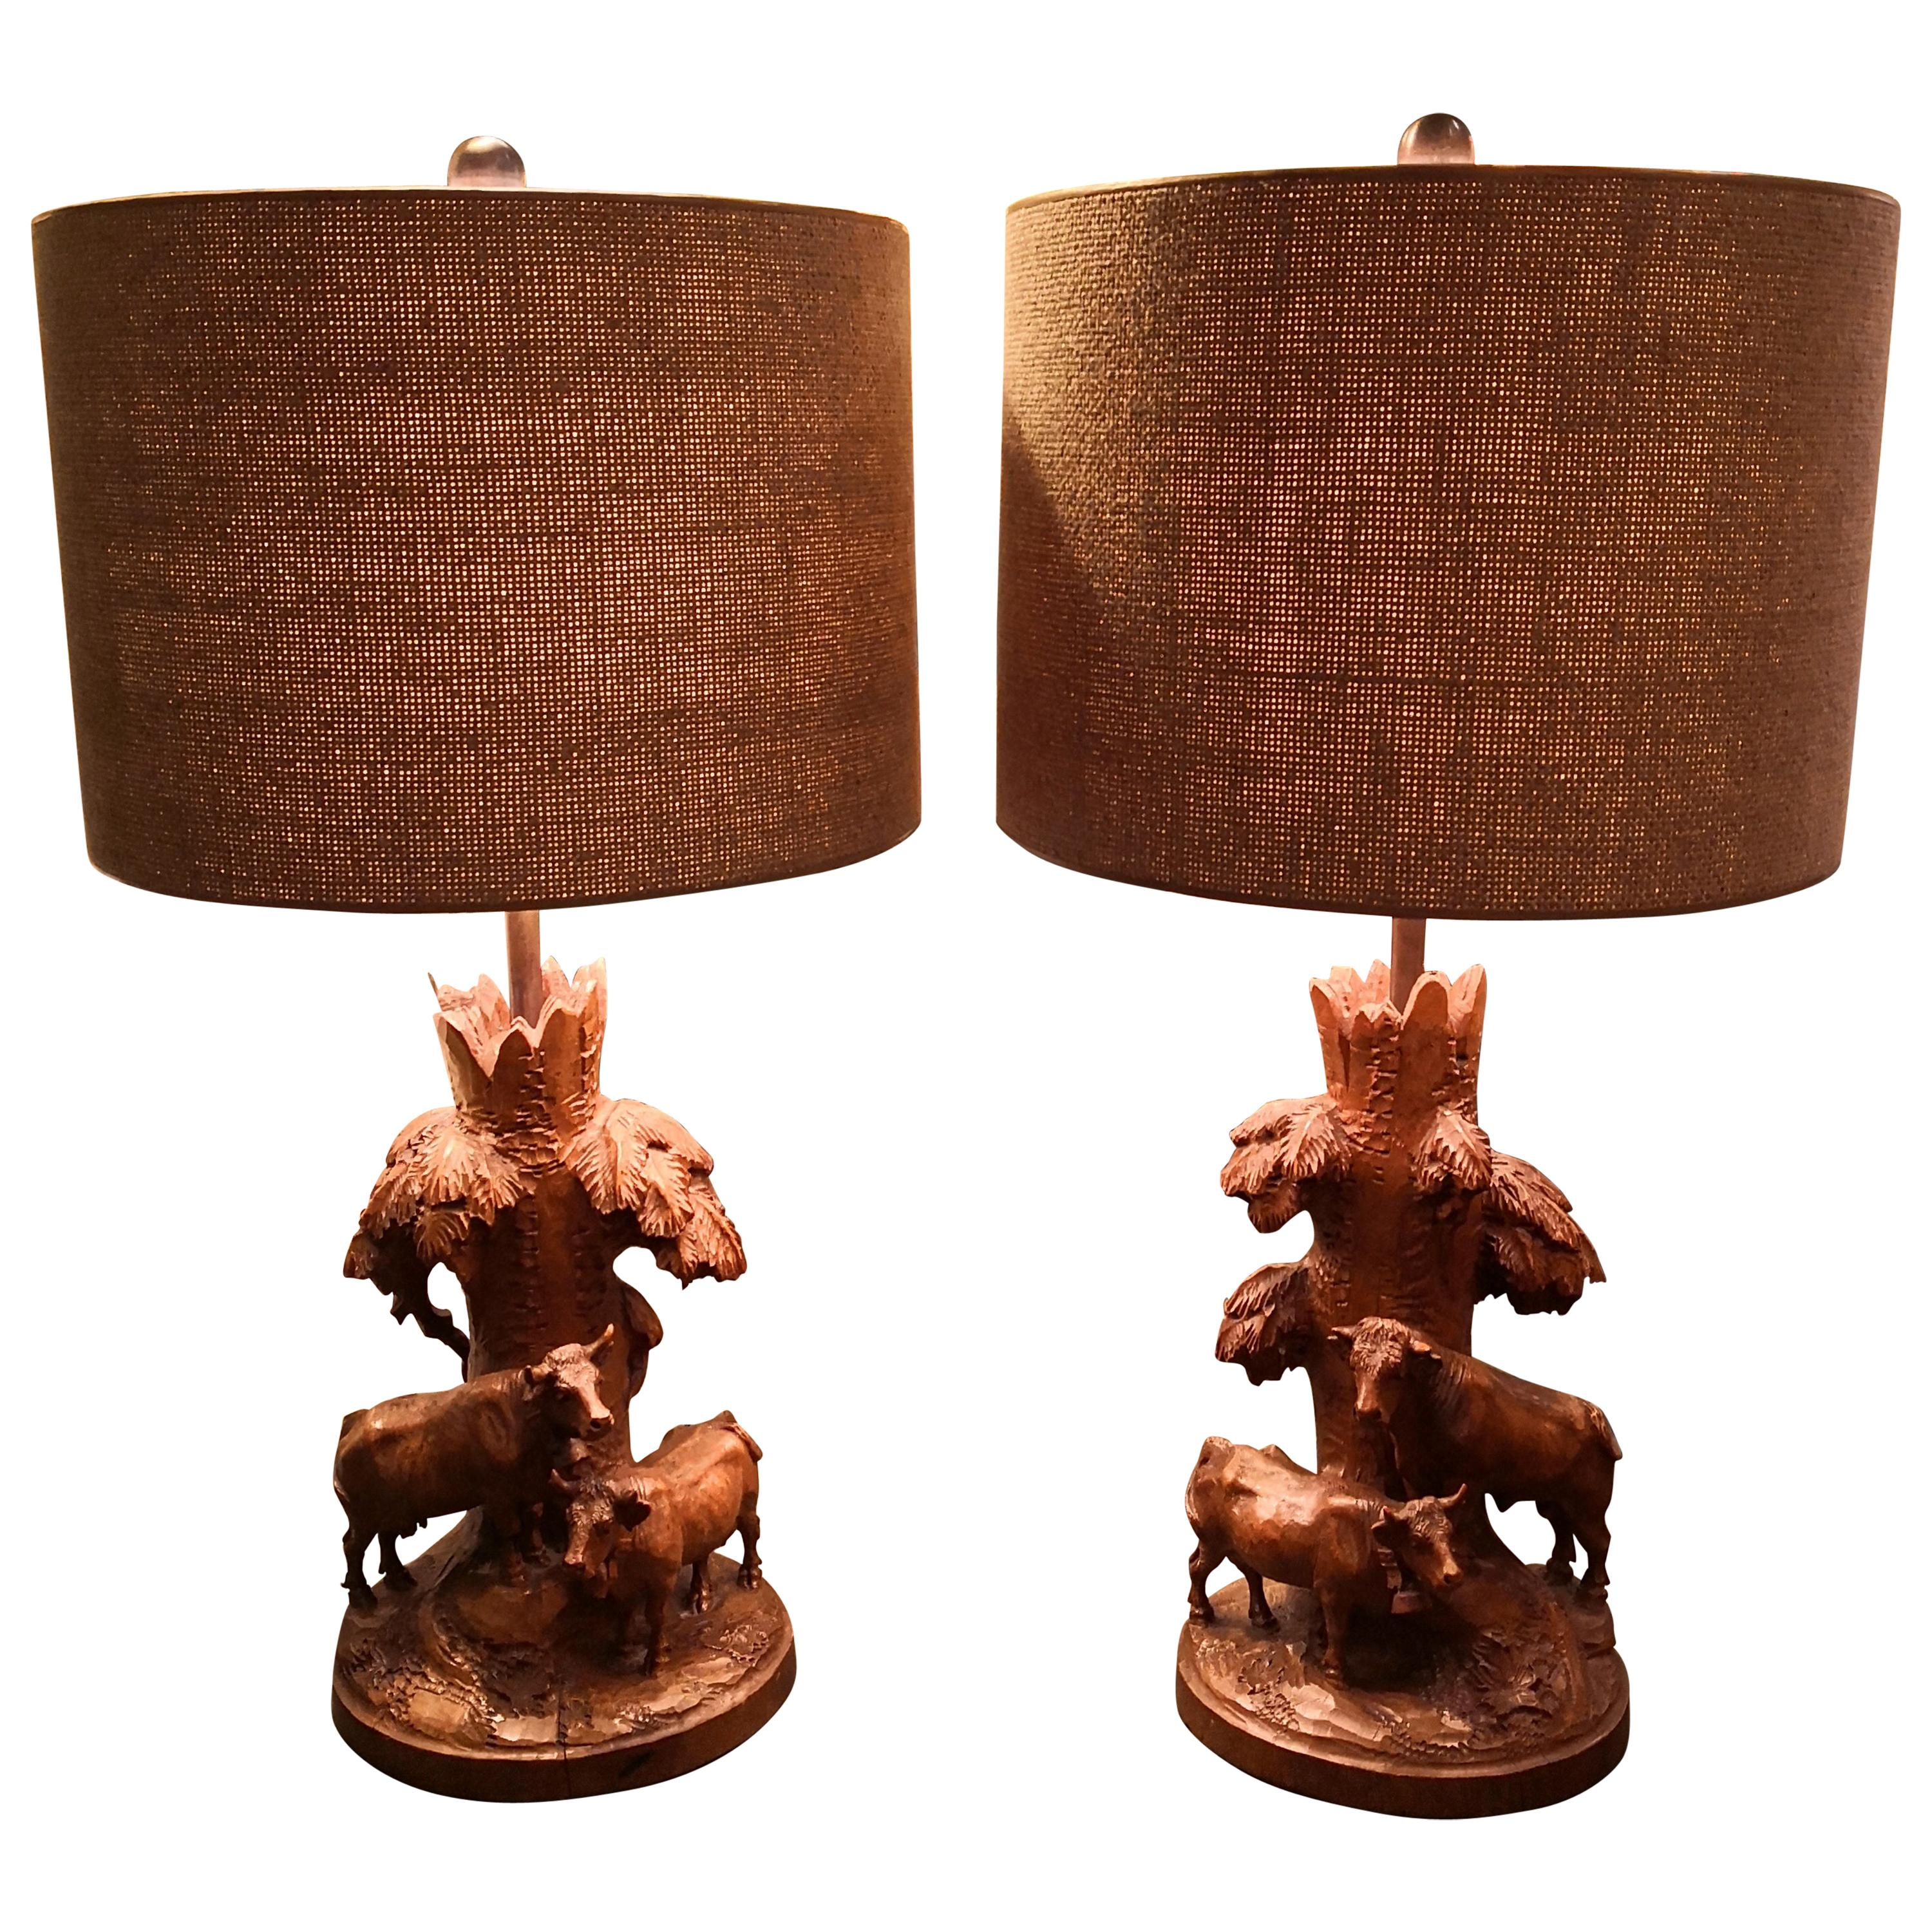 19th Century Black Forest Pair of Table Lamps Hand-Carved Sculptures